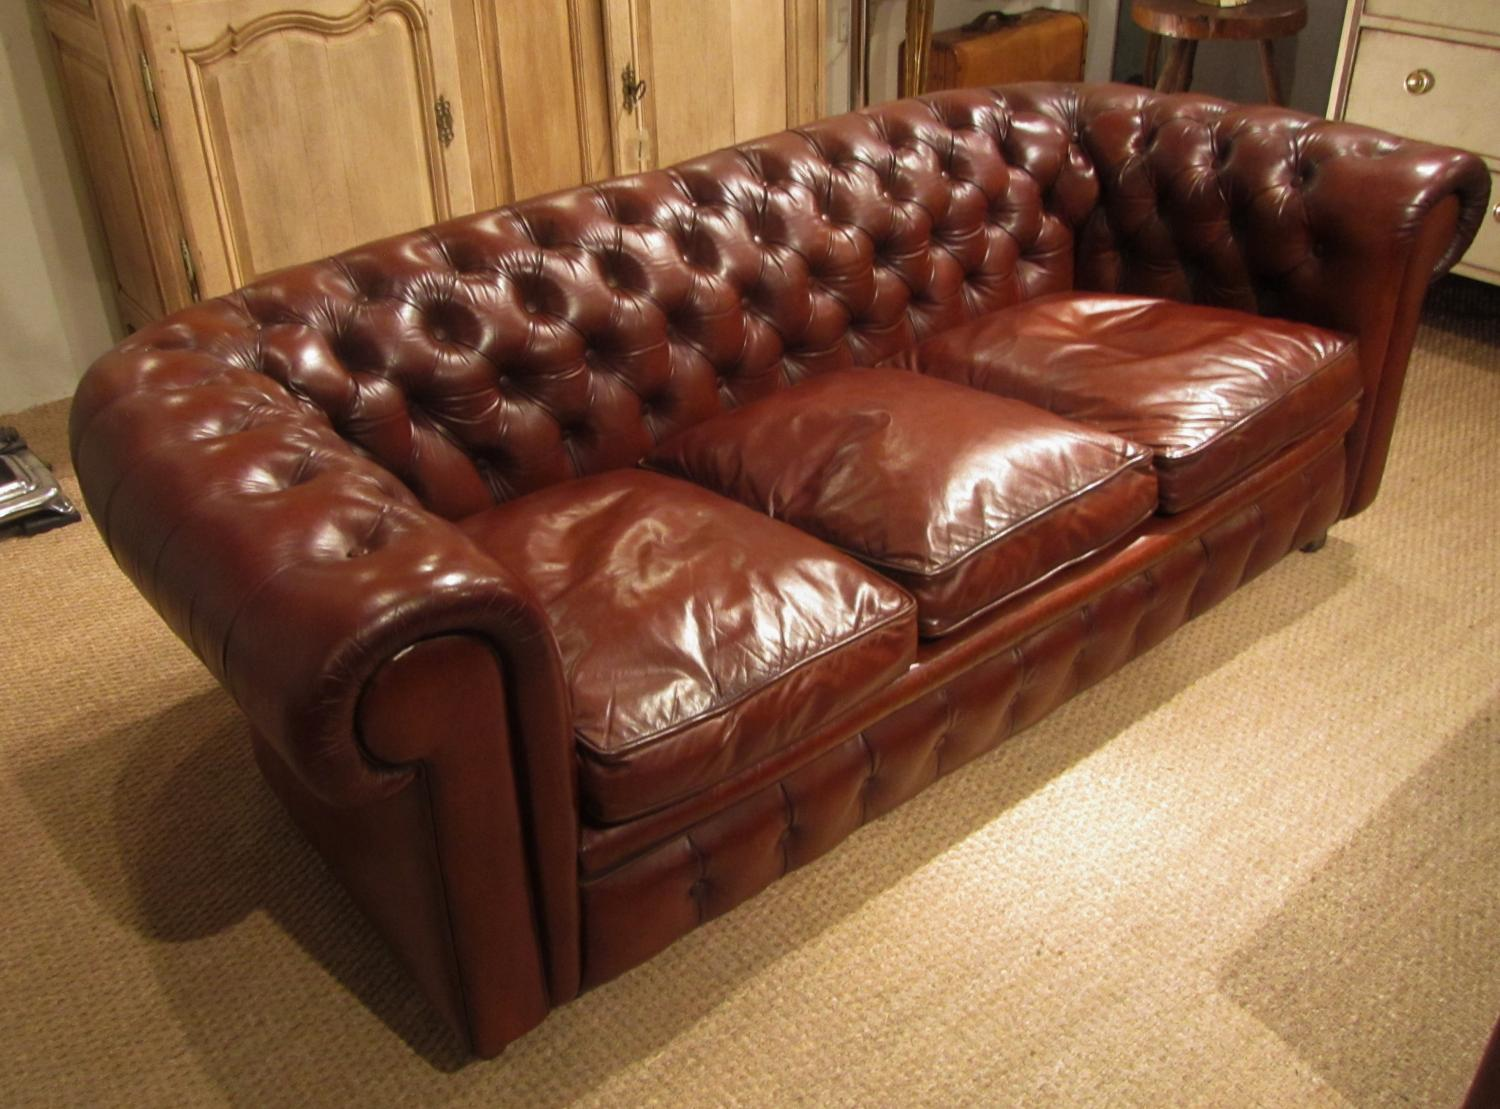 A leather chesterfield sofa